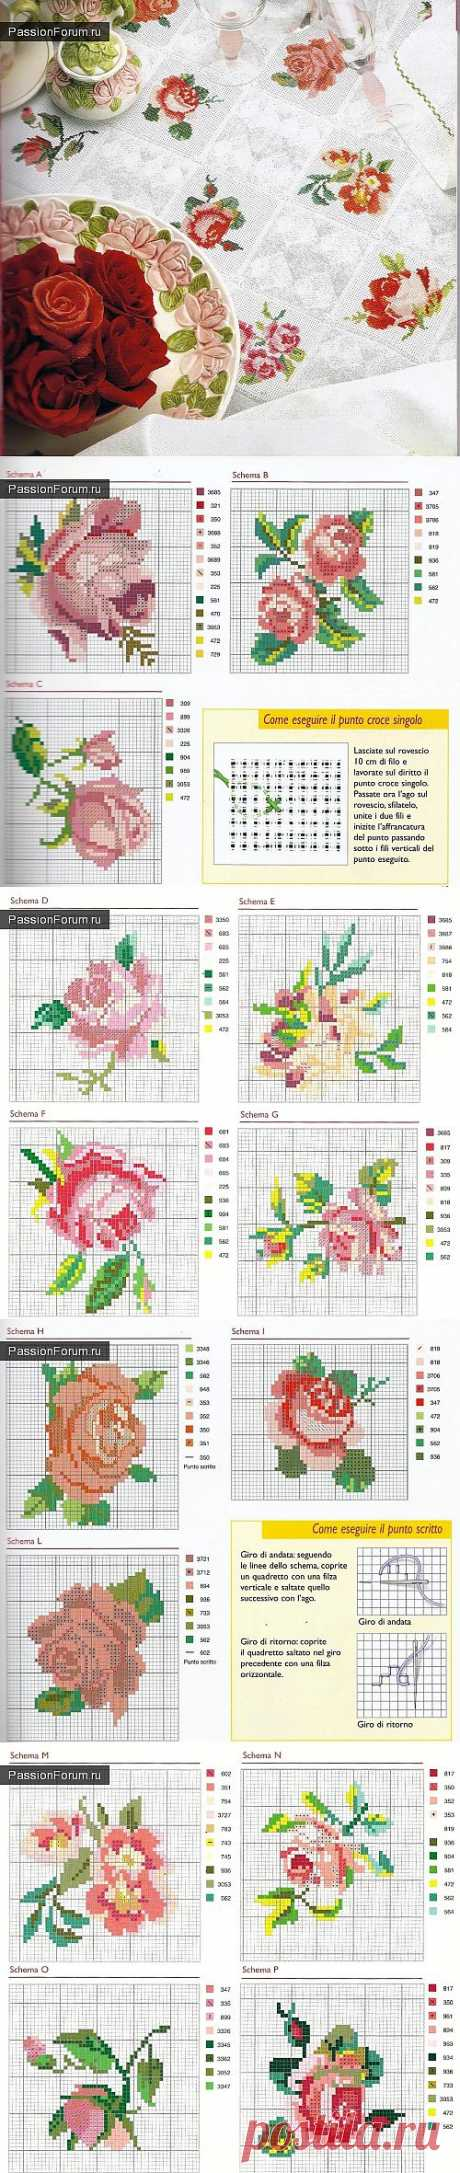 PATTERNS FOR CLOTHS AND NAPKINS. PARTS 10 \/ Schemes of an embroidery cross \/ PassionForum - master classes in needlework